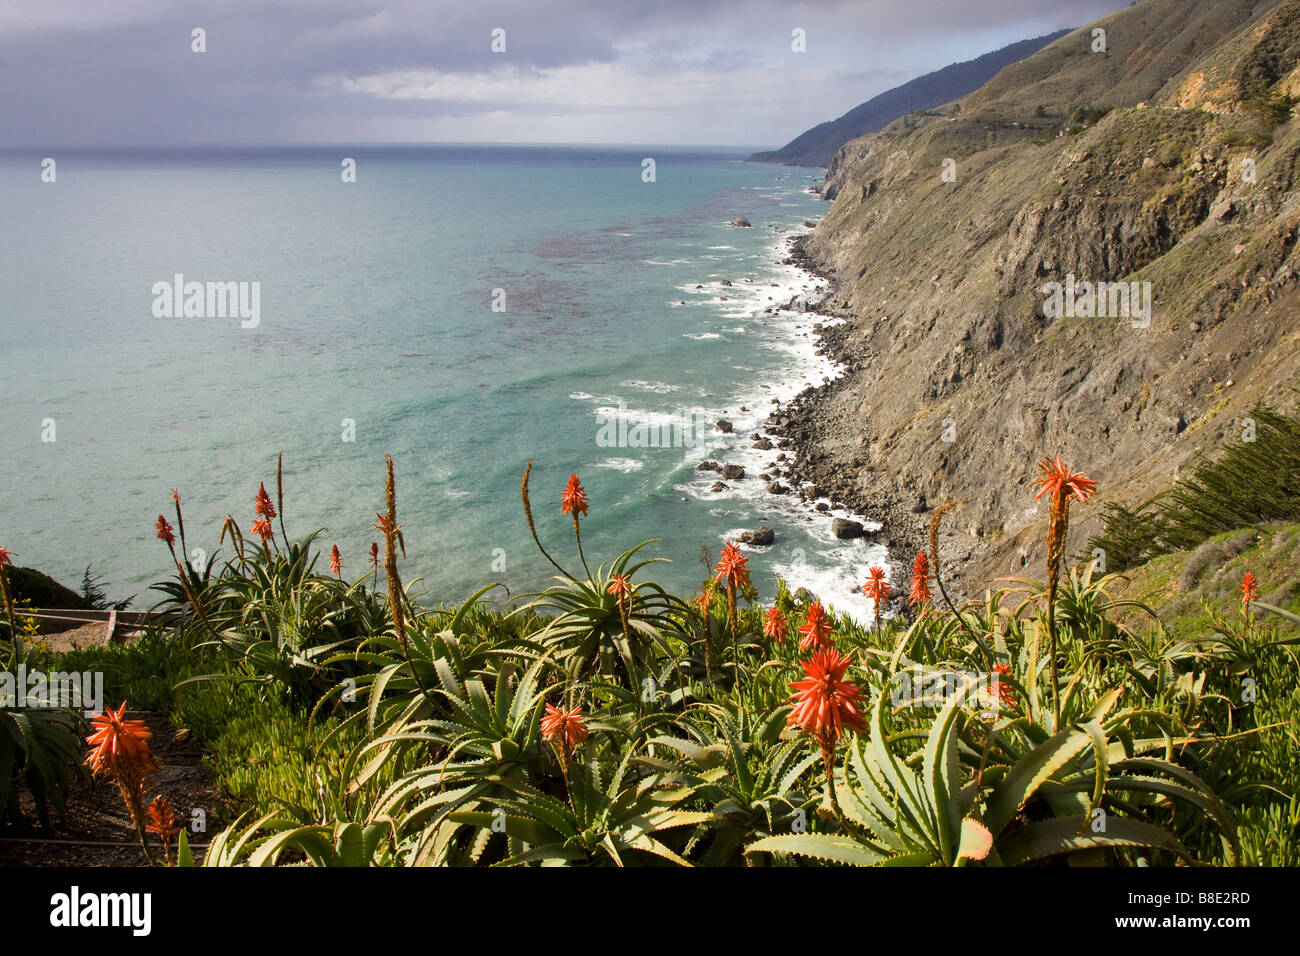 Ragged Point Pacific Coast Highway - Stock Image